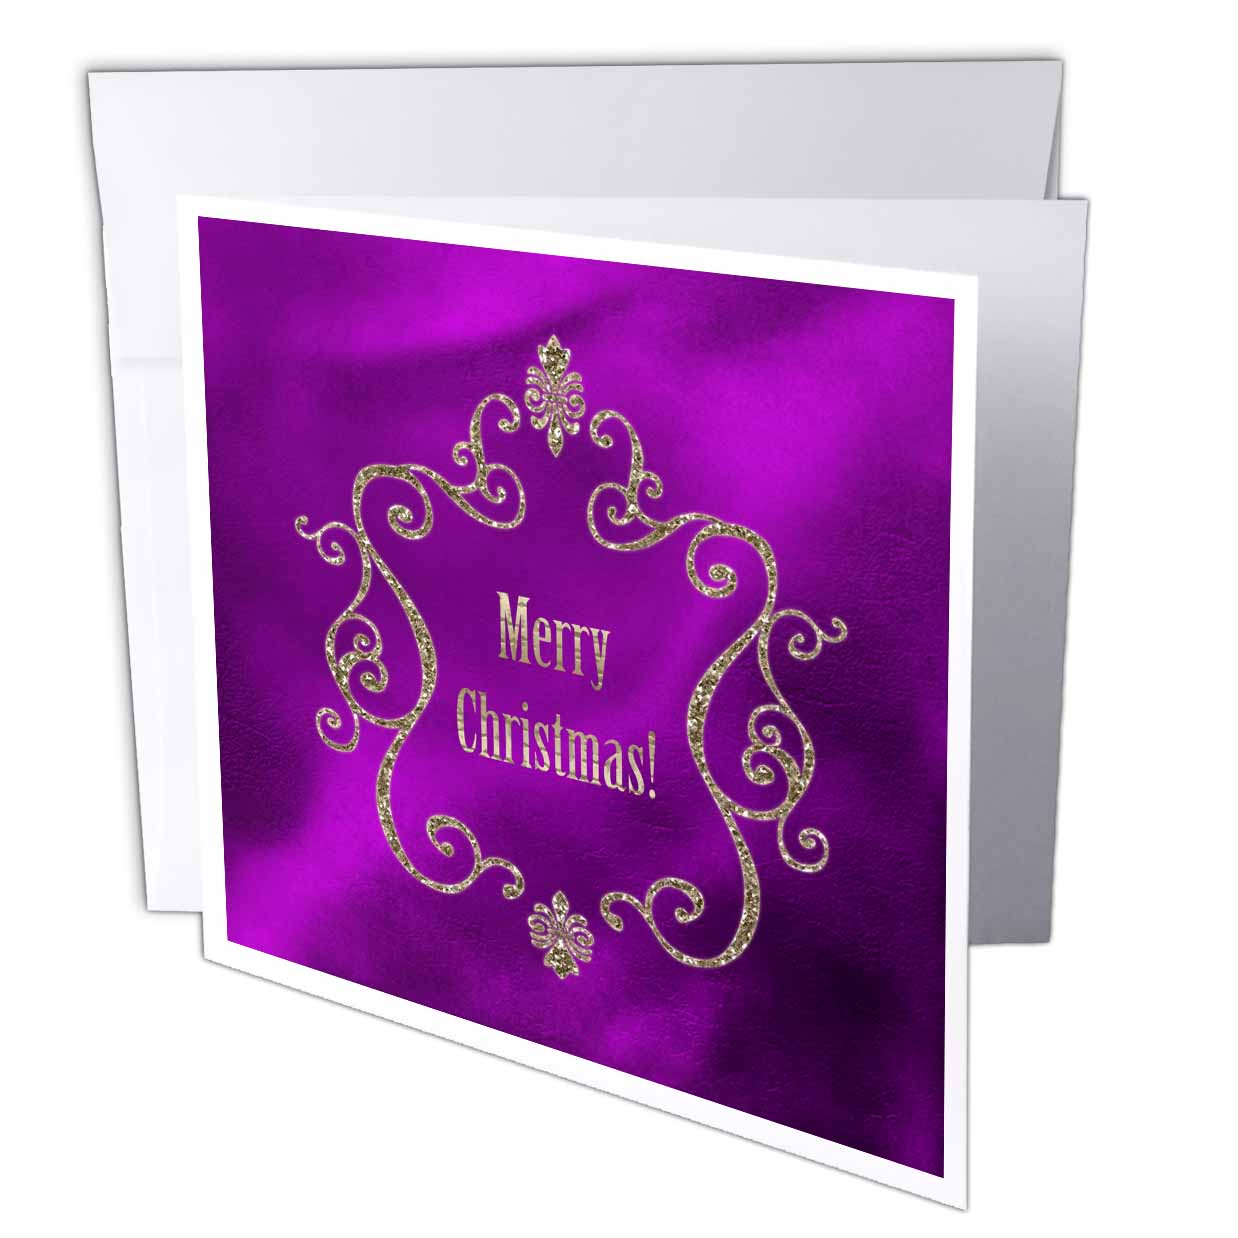 3dRose Elegant Gold Jewel Look Frame with Merry Christmas on Plum Purple, Greeting Card, 6 x 6 inches, single